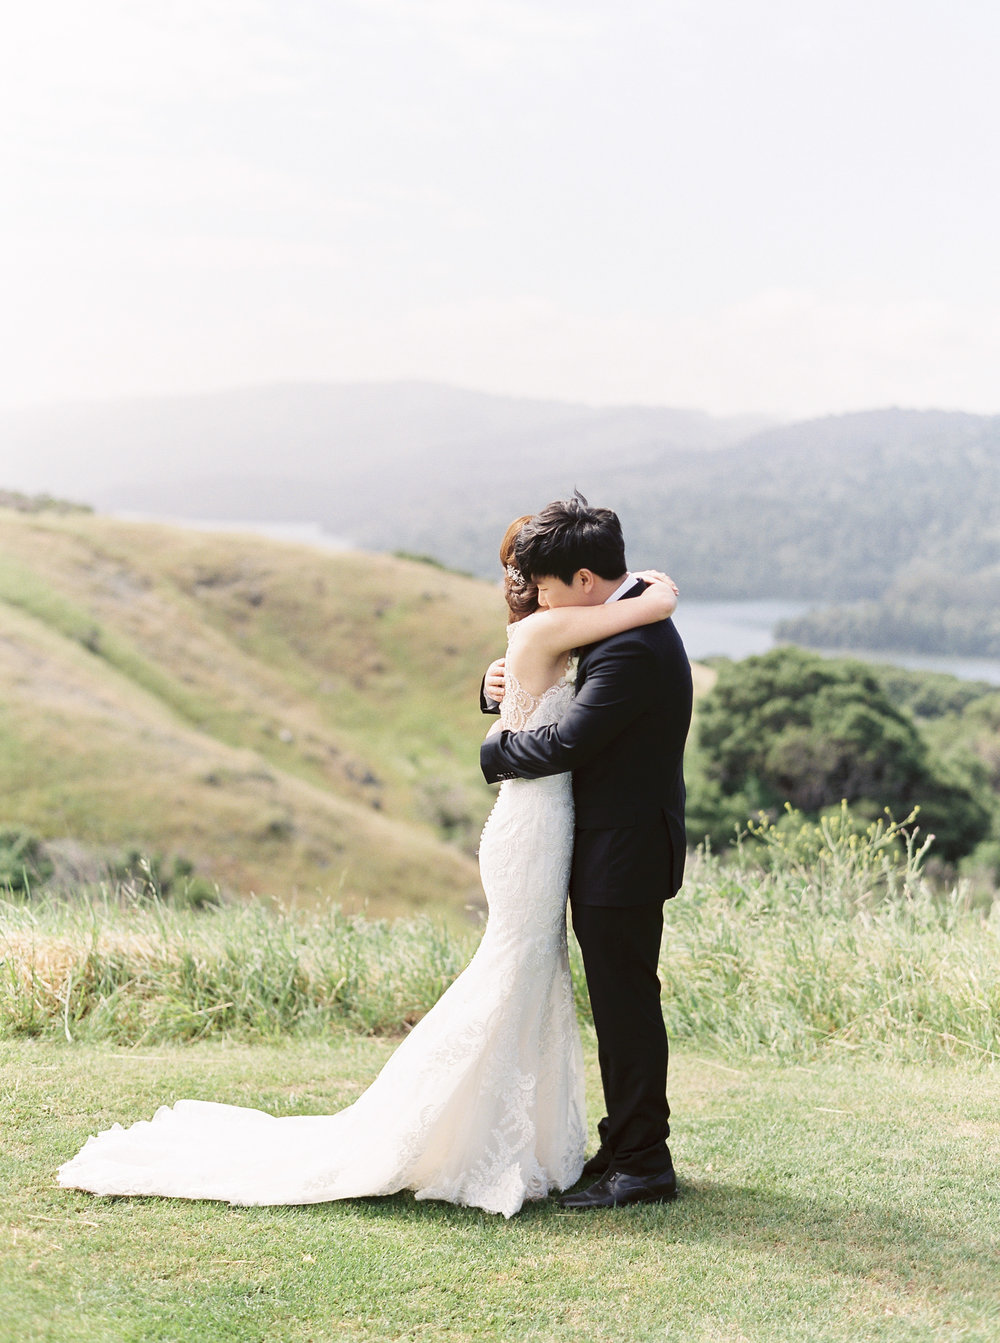 mountaintop-wedding-at-crystal-springs-burlingame-california-25.jpg